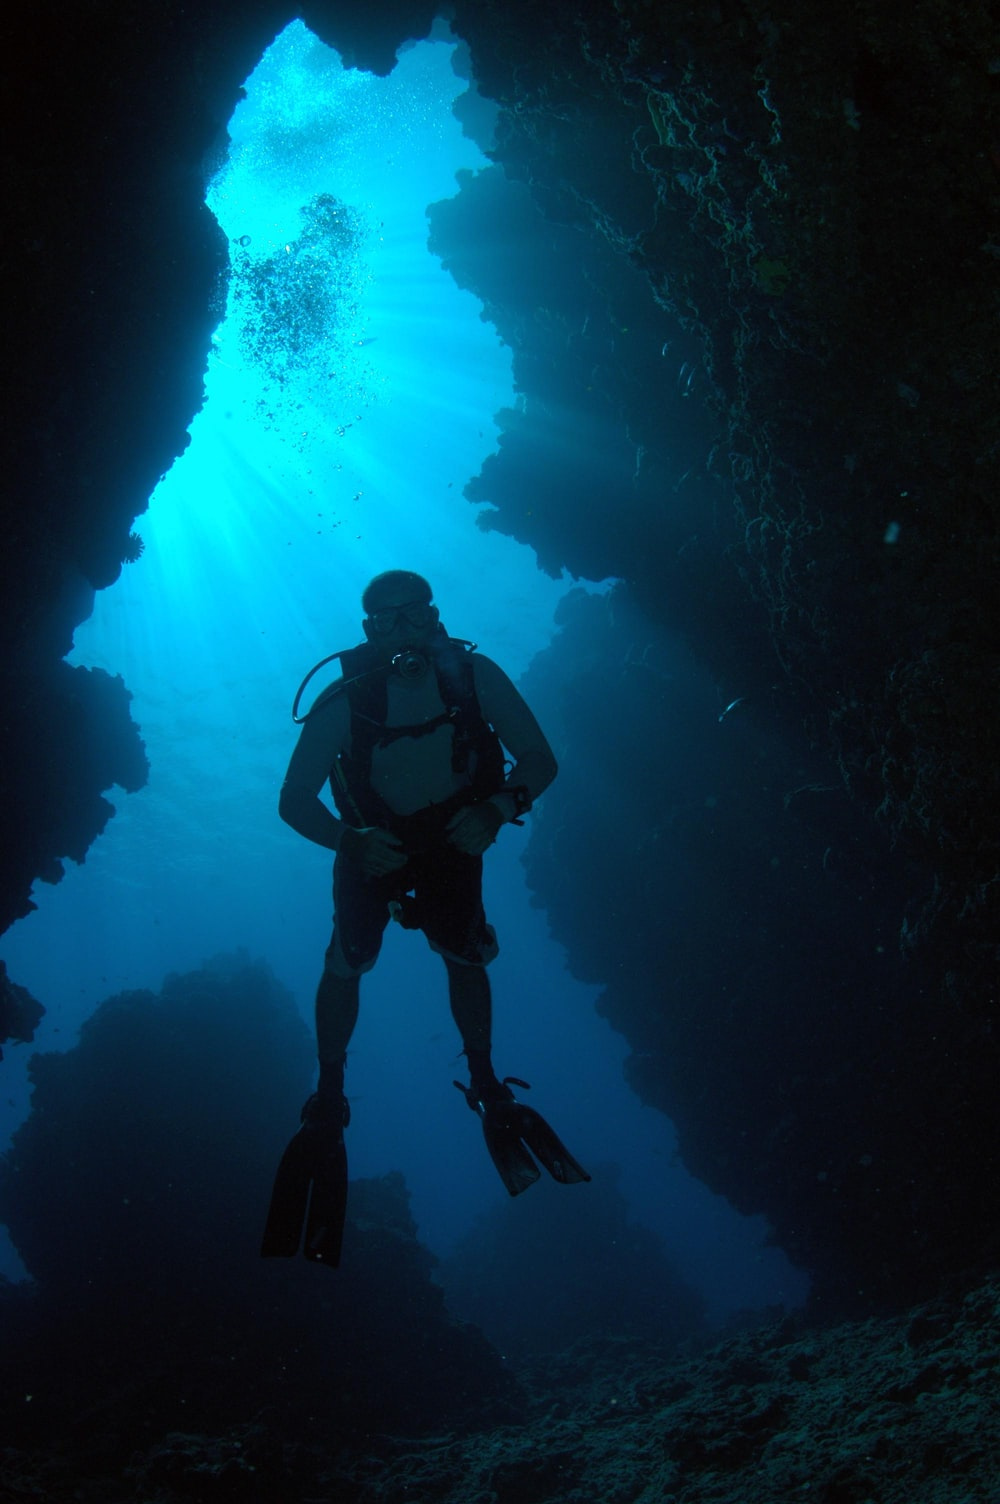 person scuba diving underwater during daytime